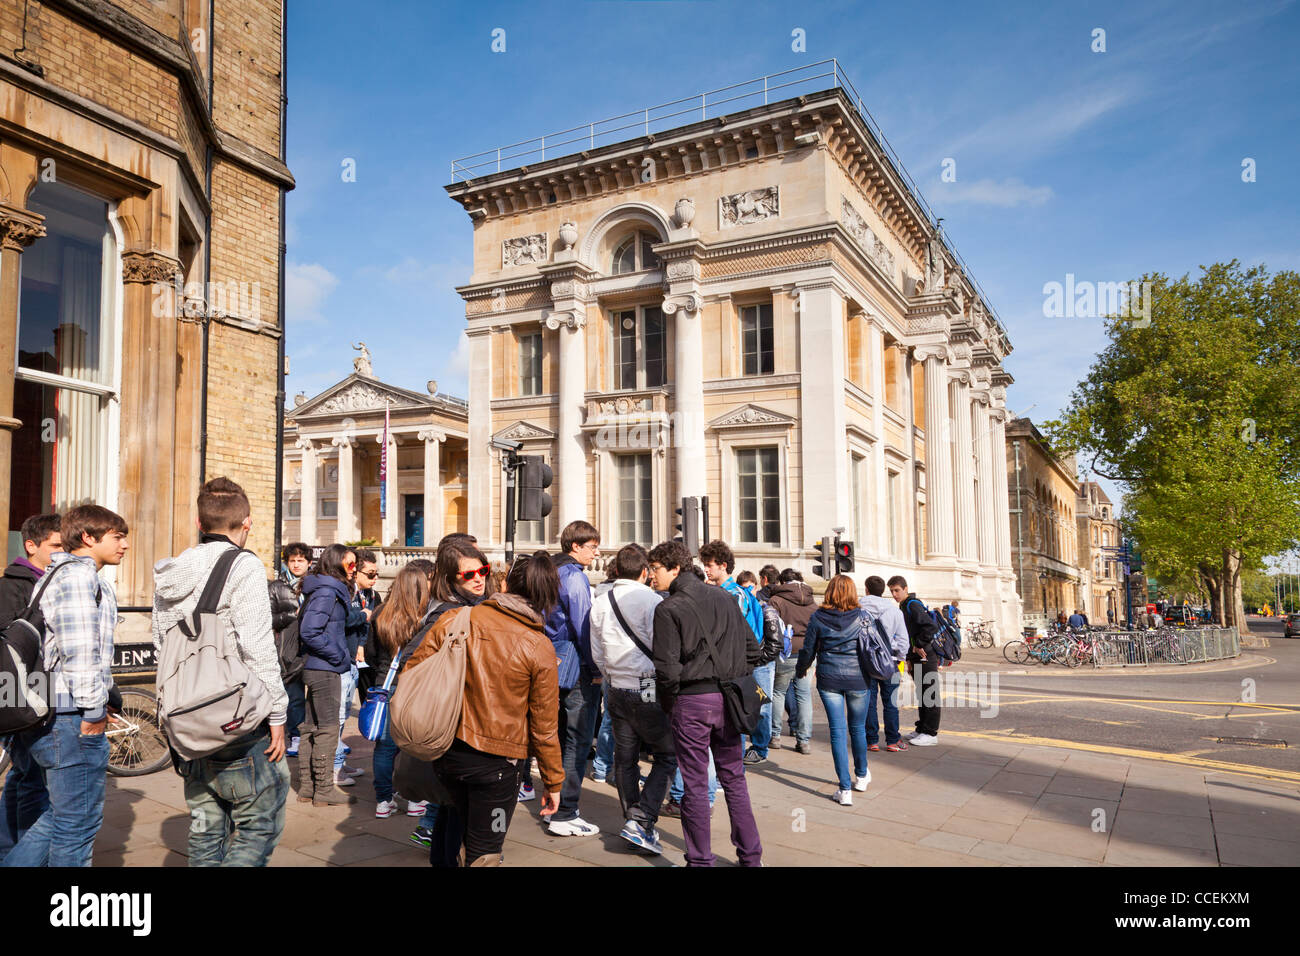 A group of teenagers outside the Ashmolean Museum, Beaumont Street, Oxford, England. - Stock Image